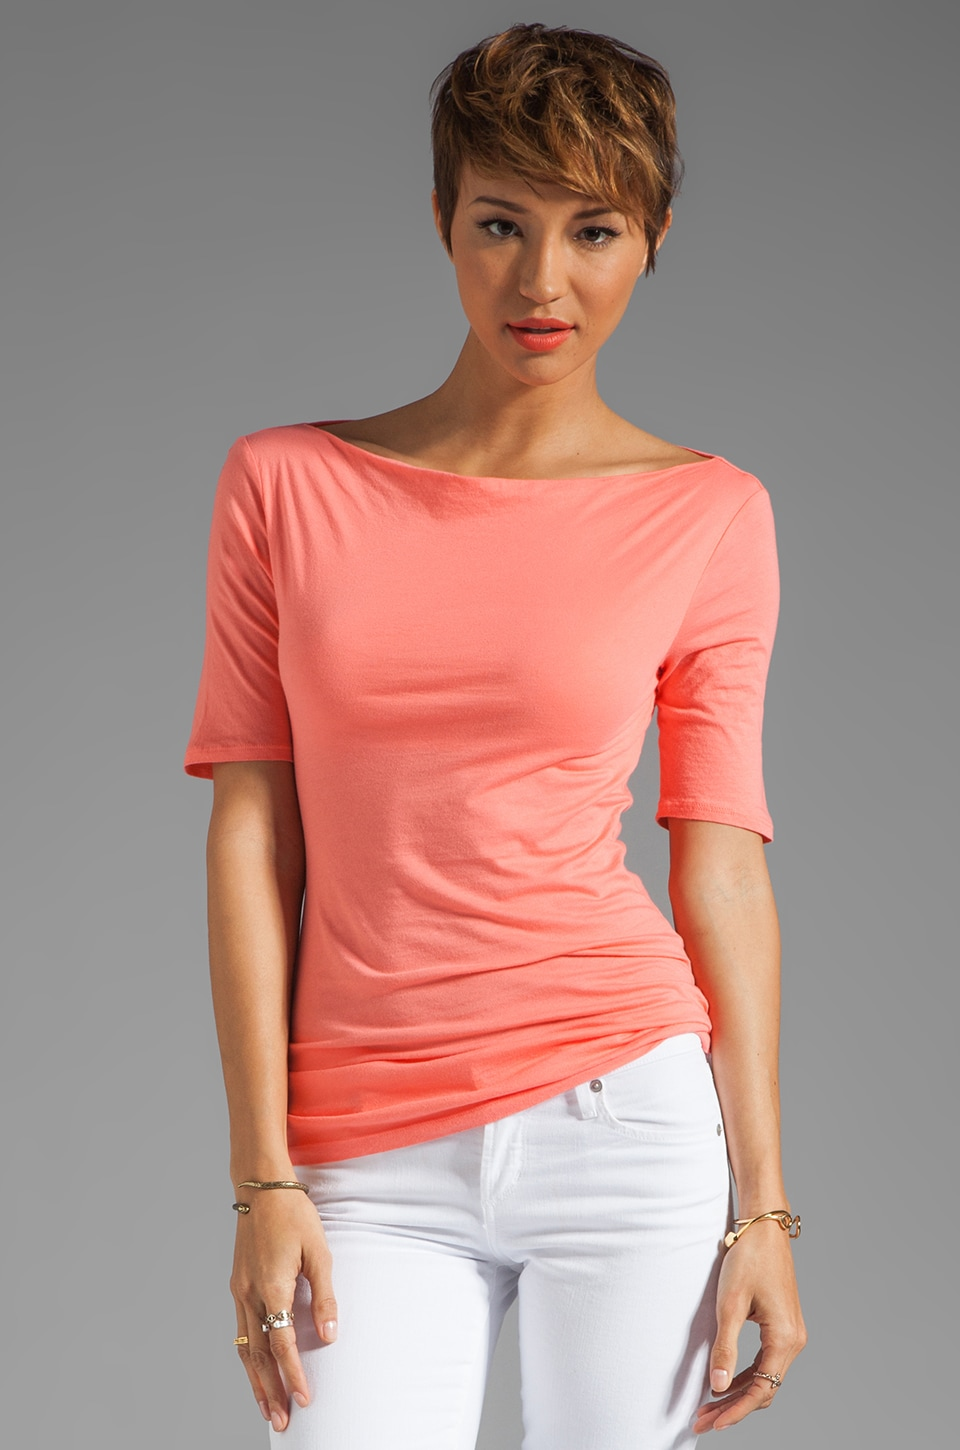 Velvet by Graham & Spencer Gauzy Whisper Classics Jenifer Top in Kumquat